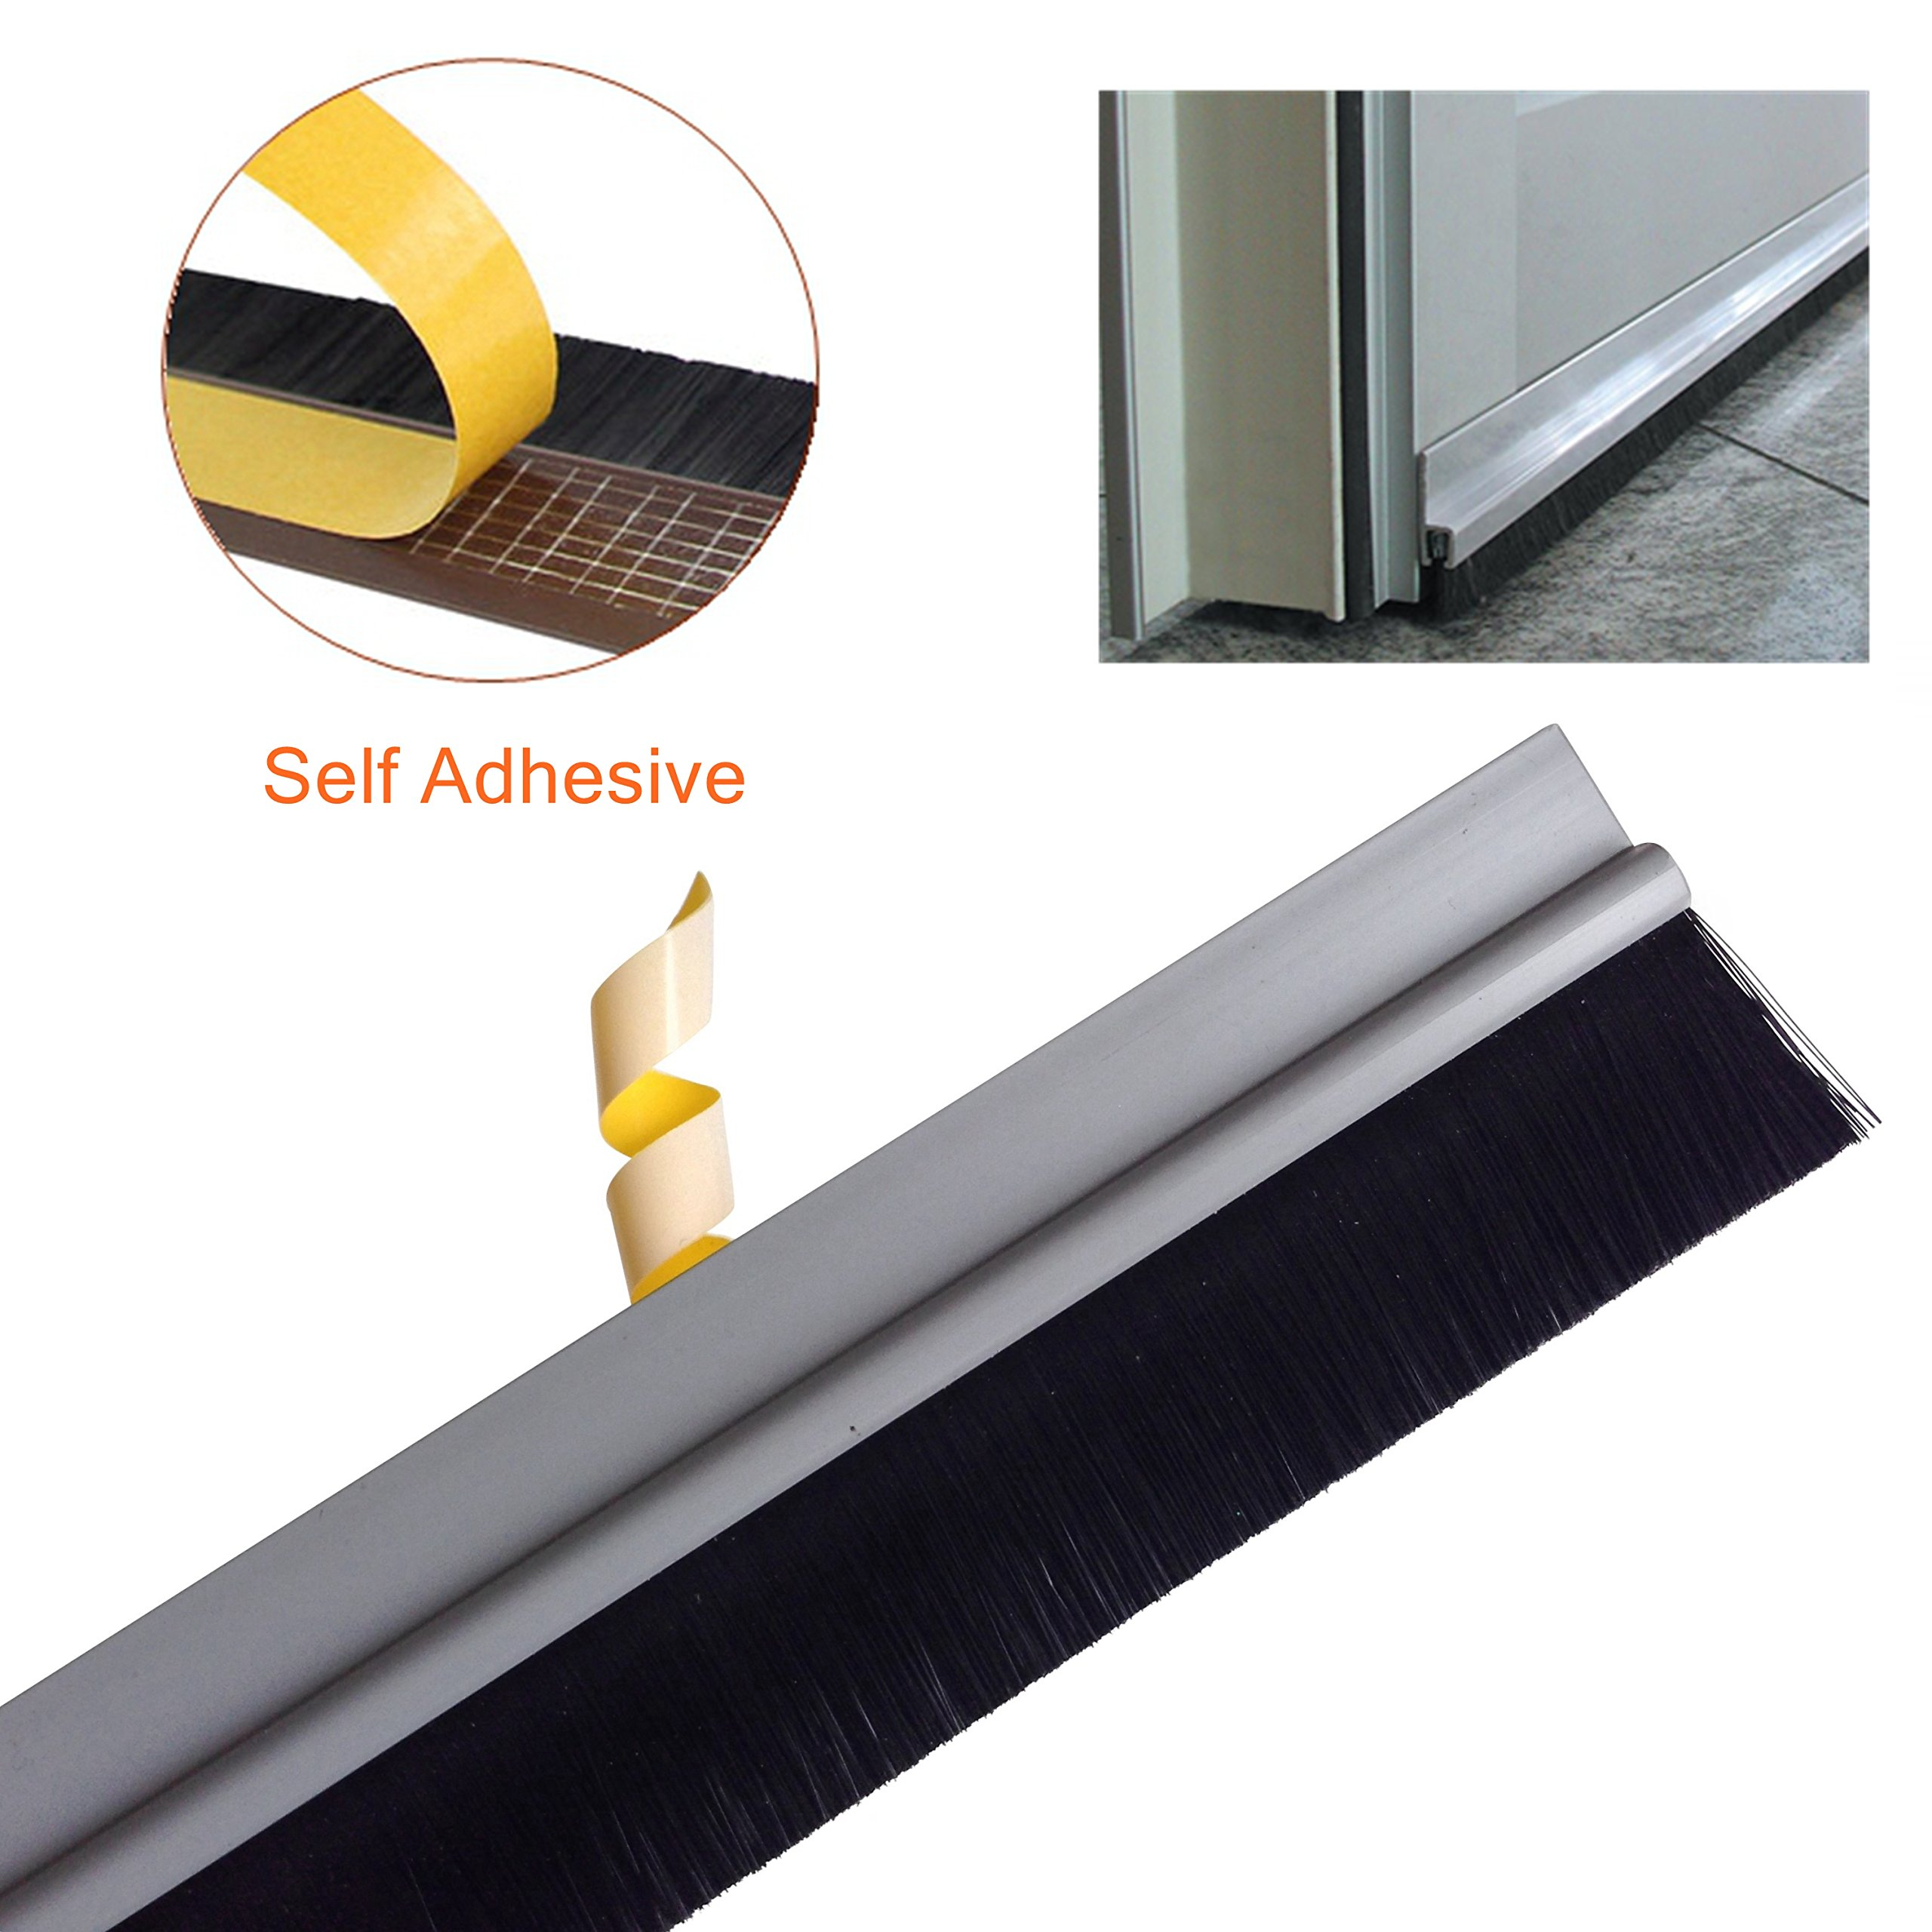 Loobani Aluminum Under Door Bottom Sweep Self Adhesive Seal Strip Draft Excluder Stopper Weather Stripping, 39'' Long X 1.85'' Width Including Brush Height 0.98 Inch